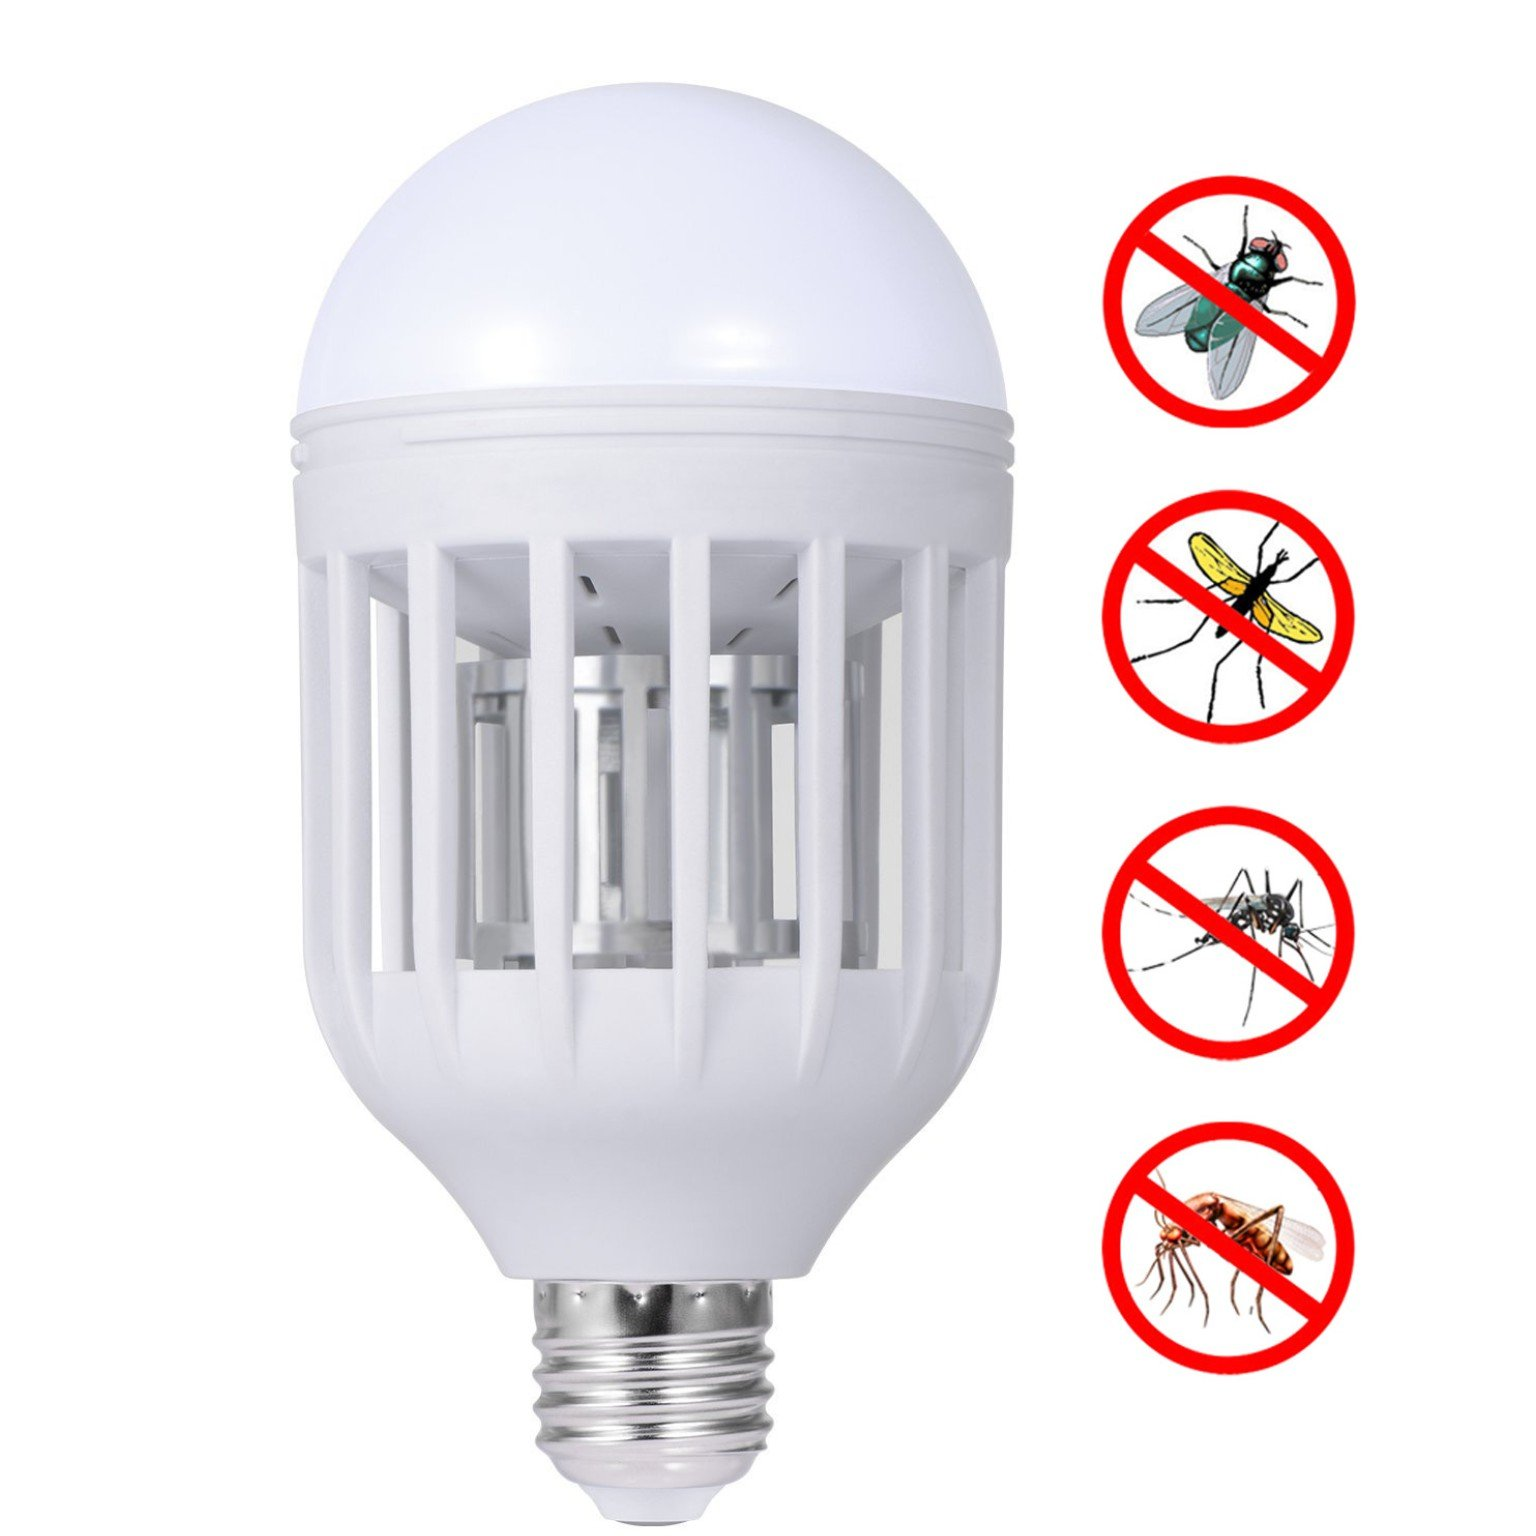 UDYR Bug Zapper Light Bulb LED Mosquito Killer Bulb Electronic Insect Killer Lamp Bulb Flying Insects Wasp Moths Bug Killer for Indoor Home Garden Patio Backyard (E27 110V 12W) (white)